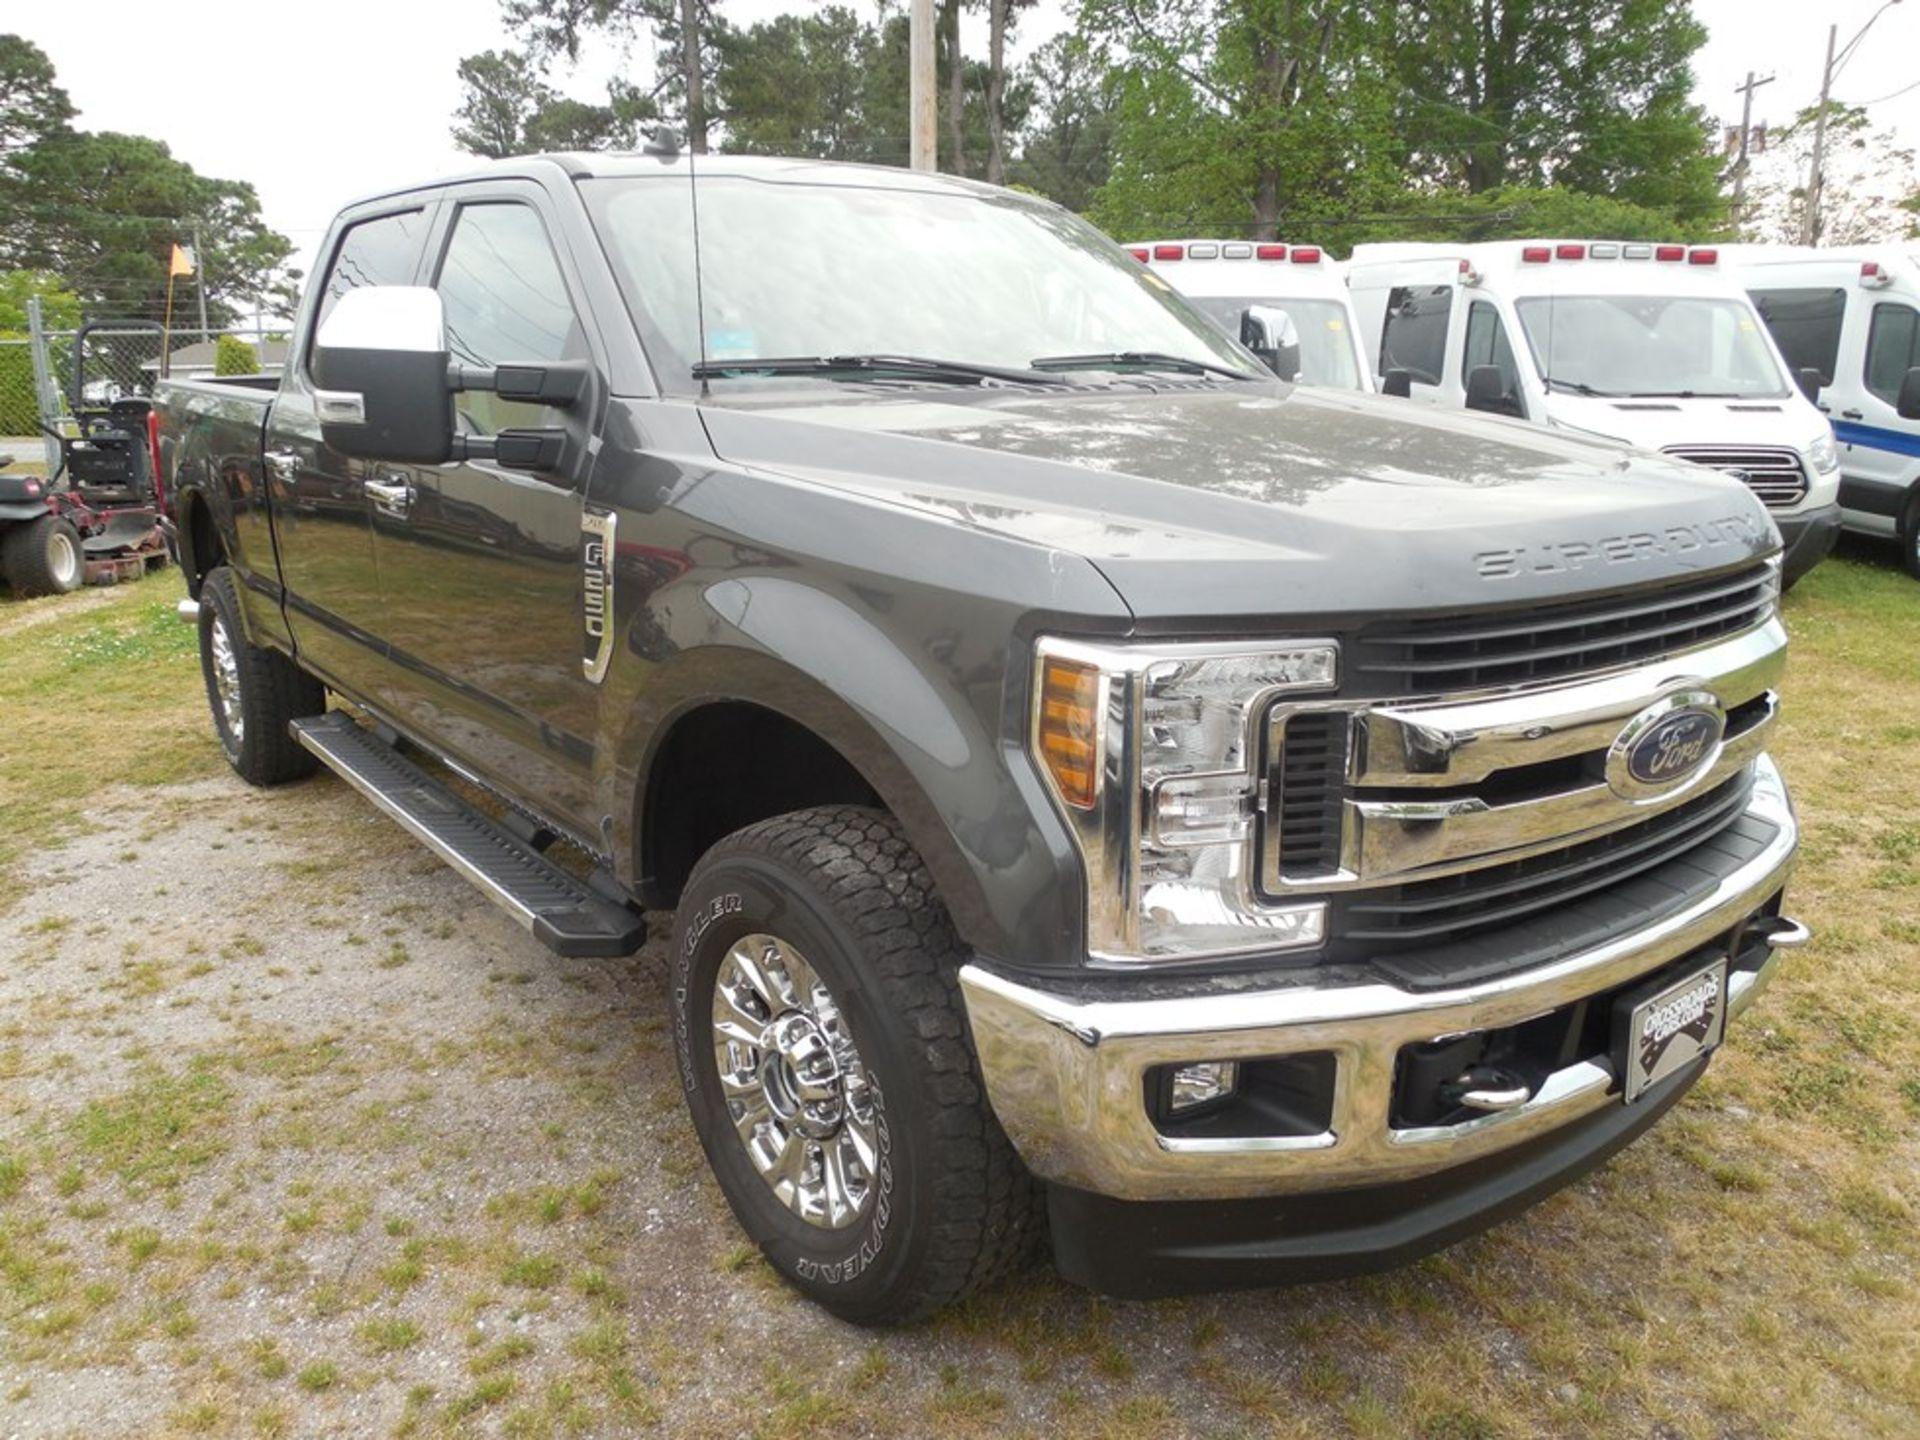 2019 Ford F250 XLT 4wd, 4dr, gas, vin# 1FT7W2B61KEC95867 19,999 miles - Image 3 of 7